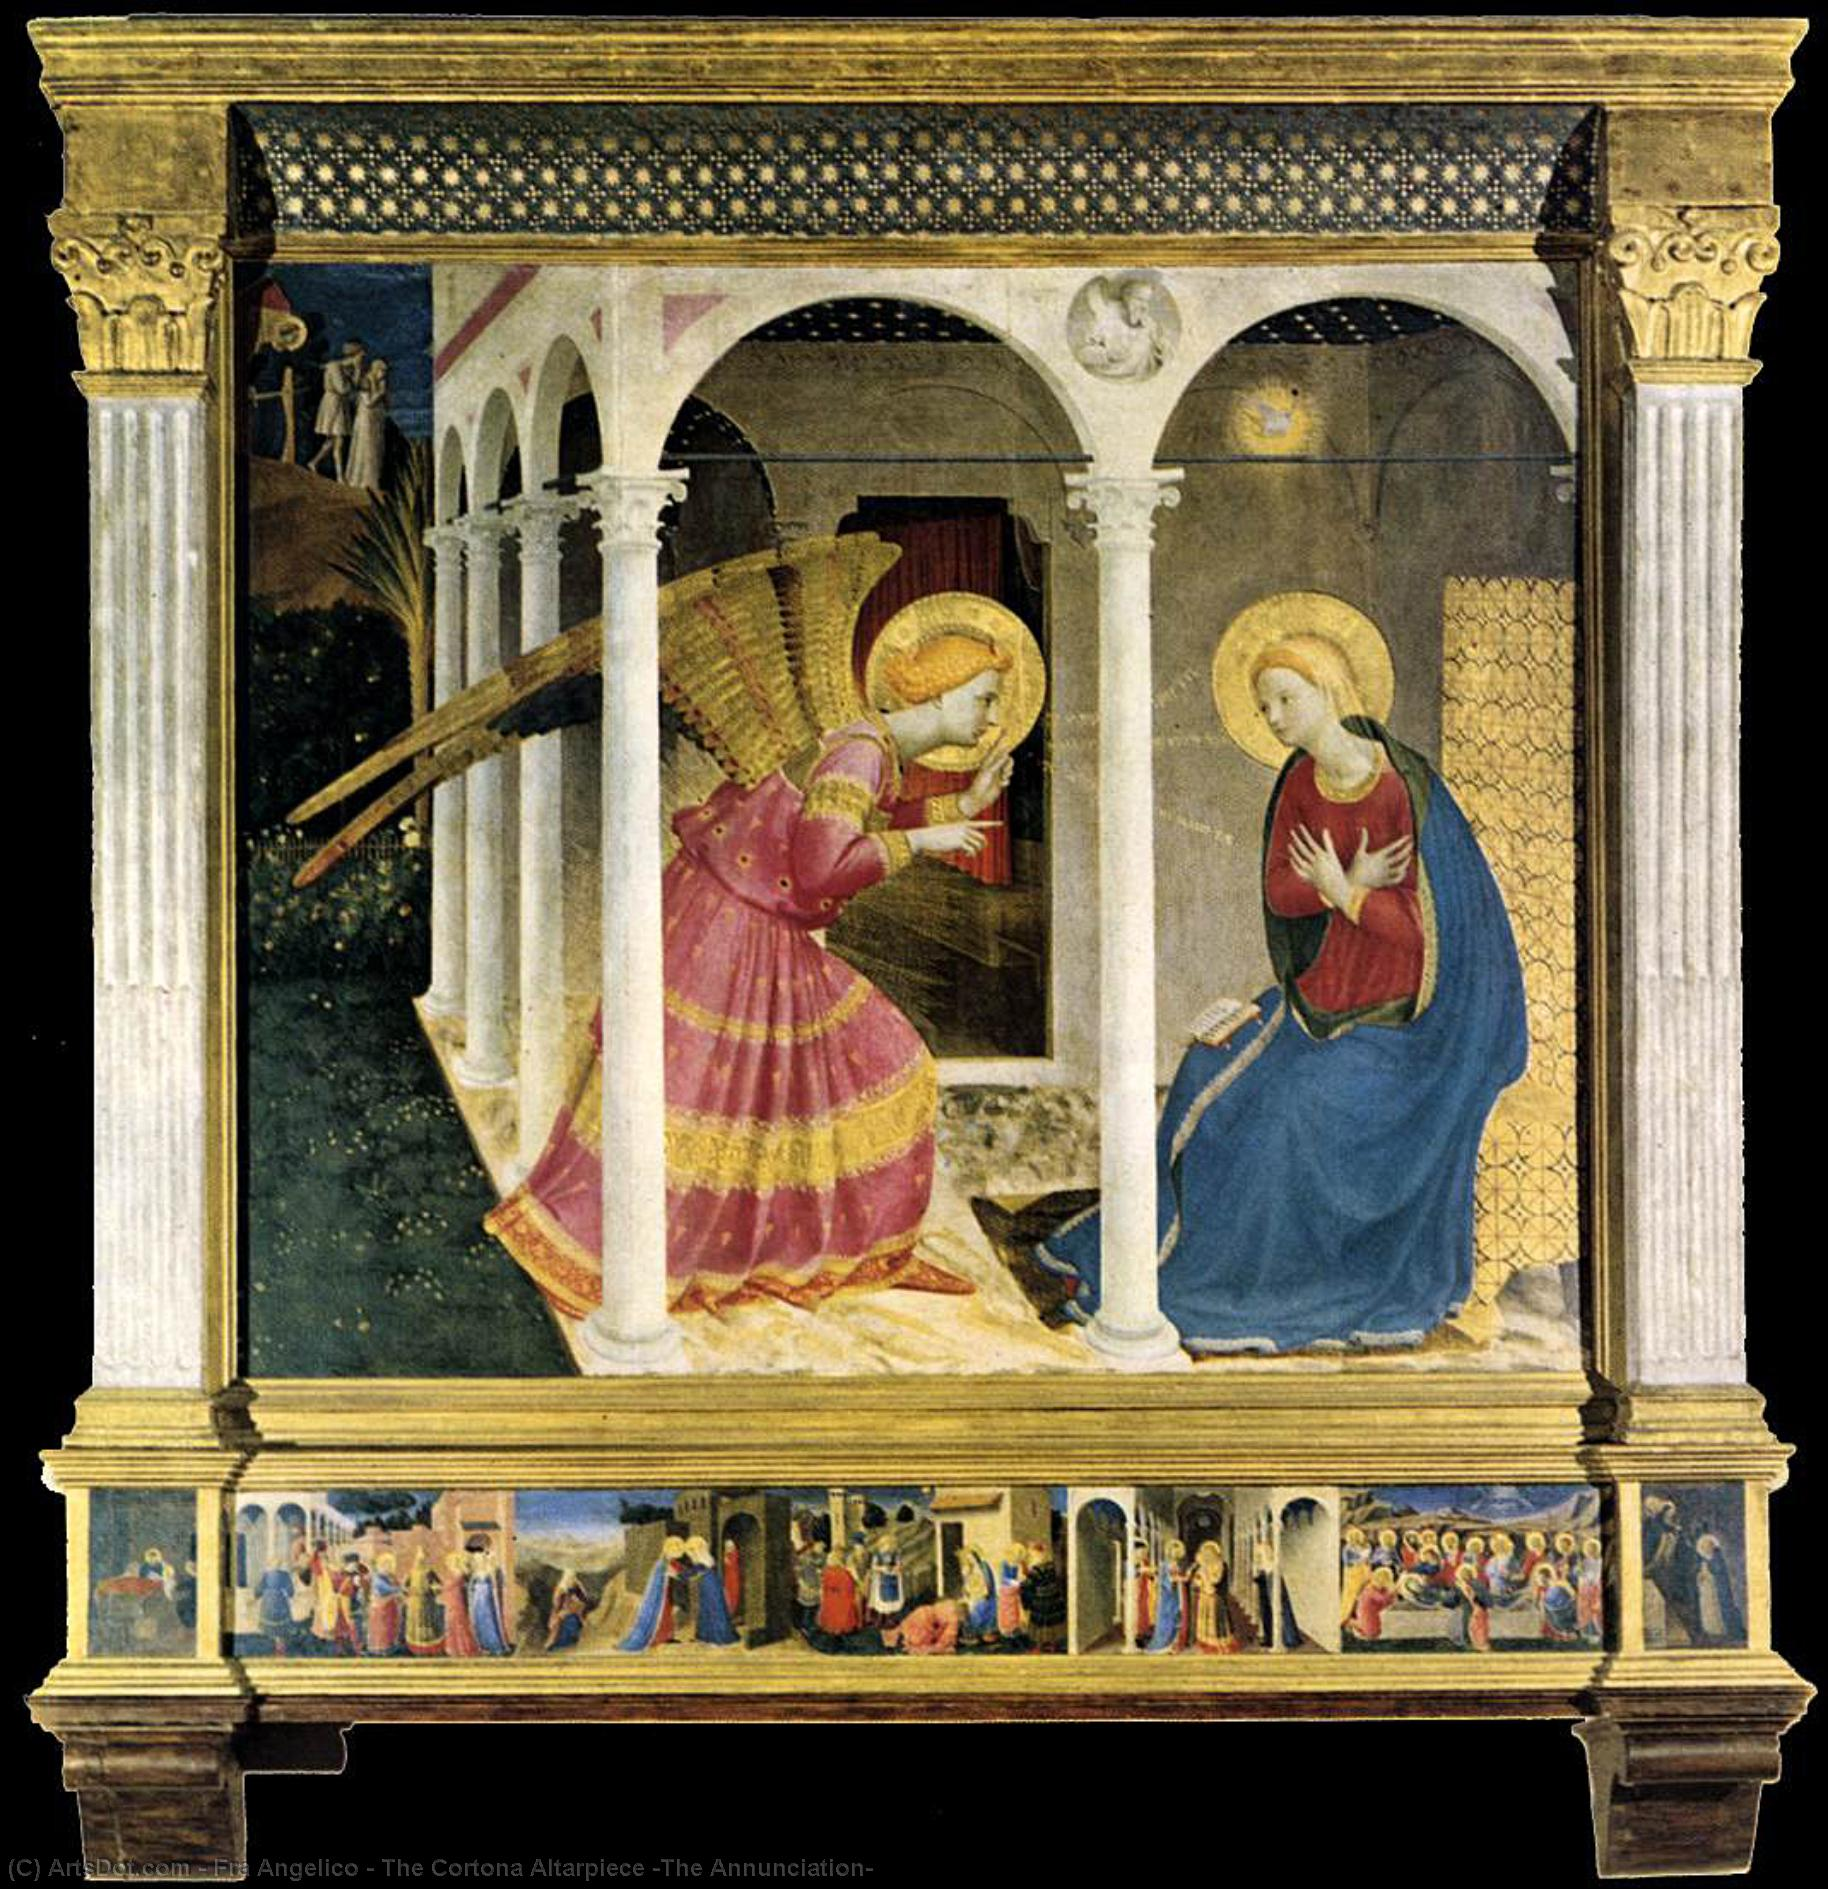 Fra Angelico (1400-1455)